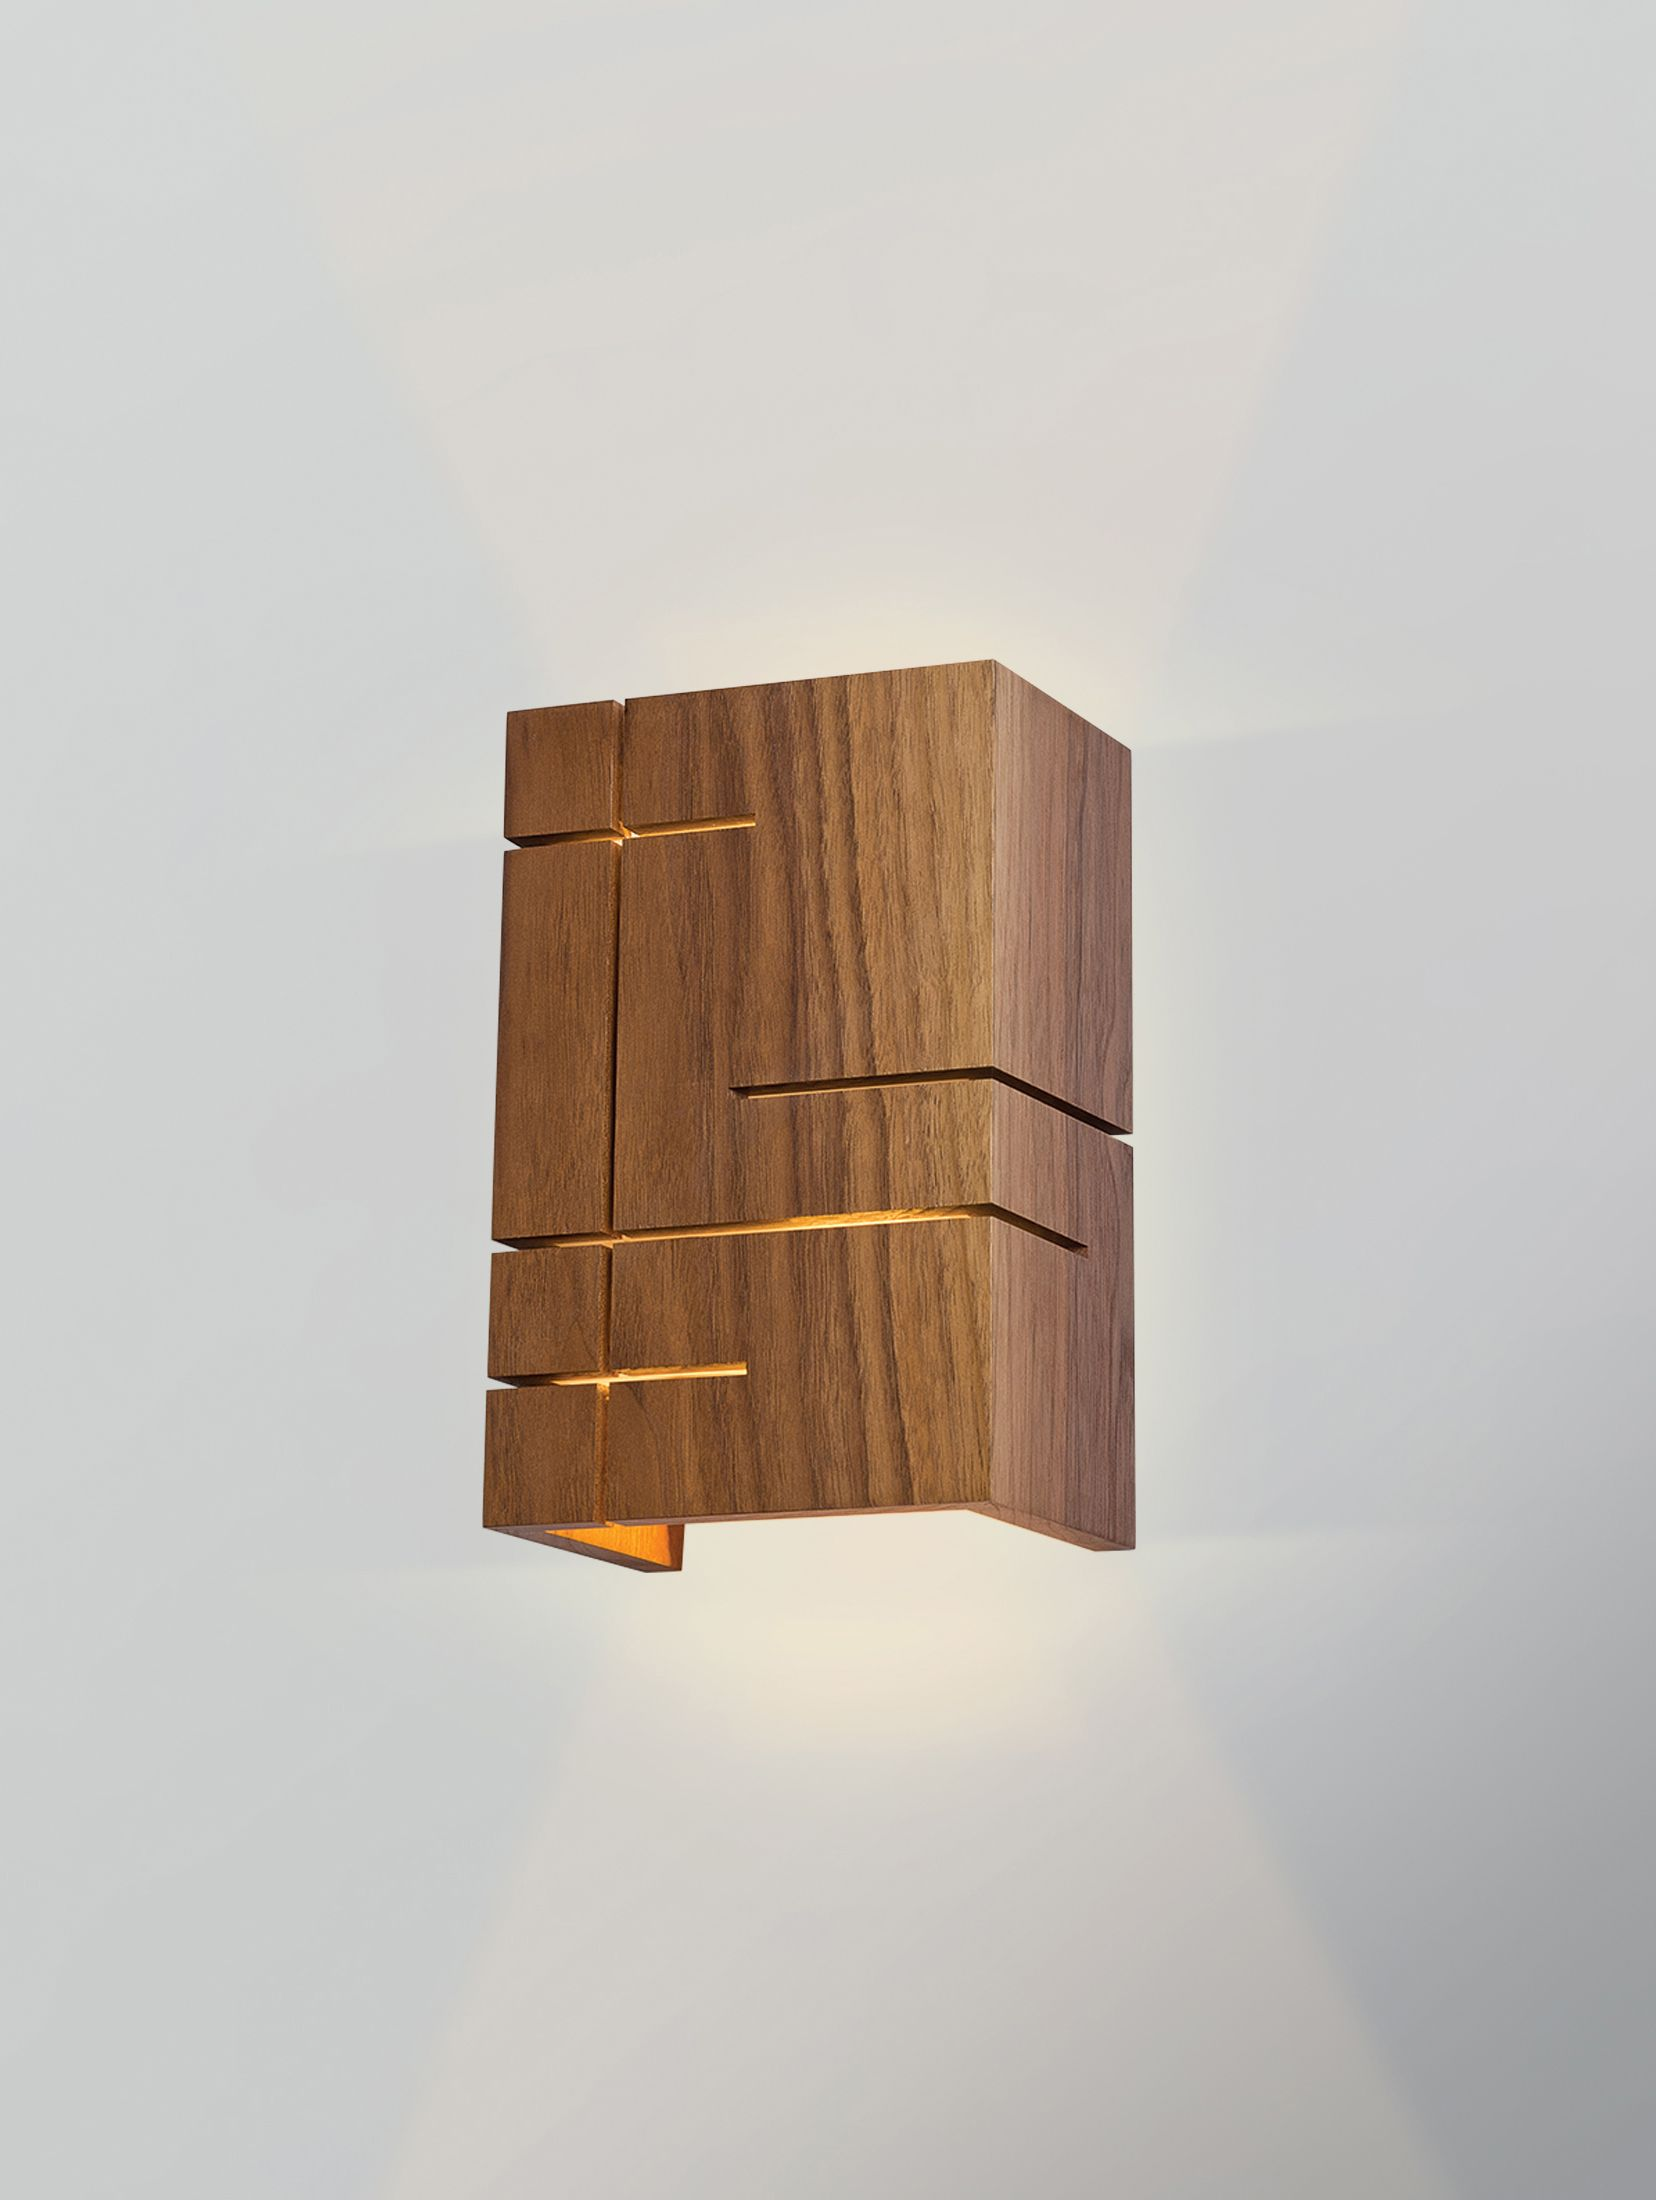 Wall Light Sconce Claudo By Cerno Interior Design Hotel Home Or Office Decorating Sconces Light Wall Sconce Lighting